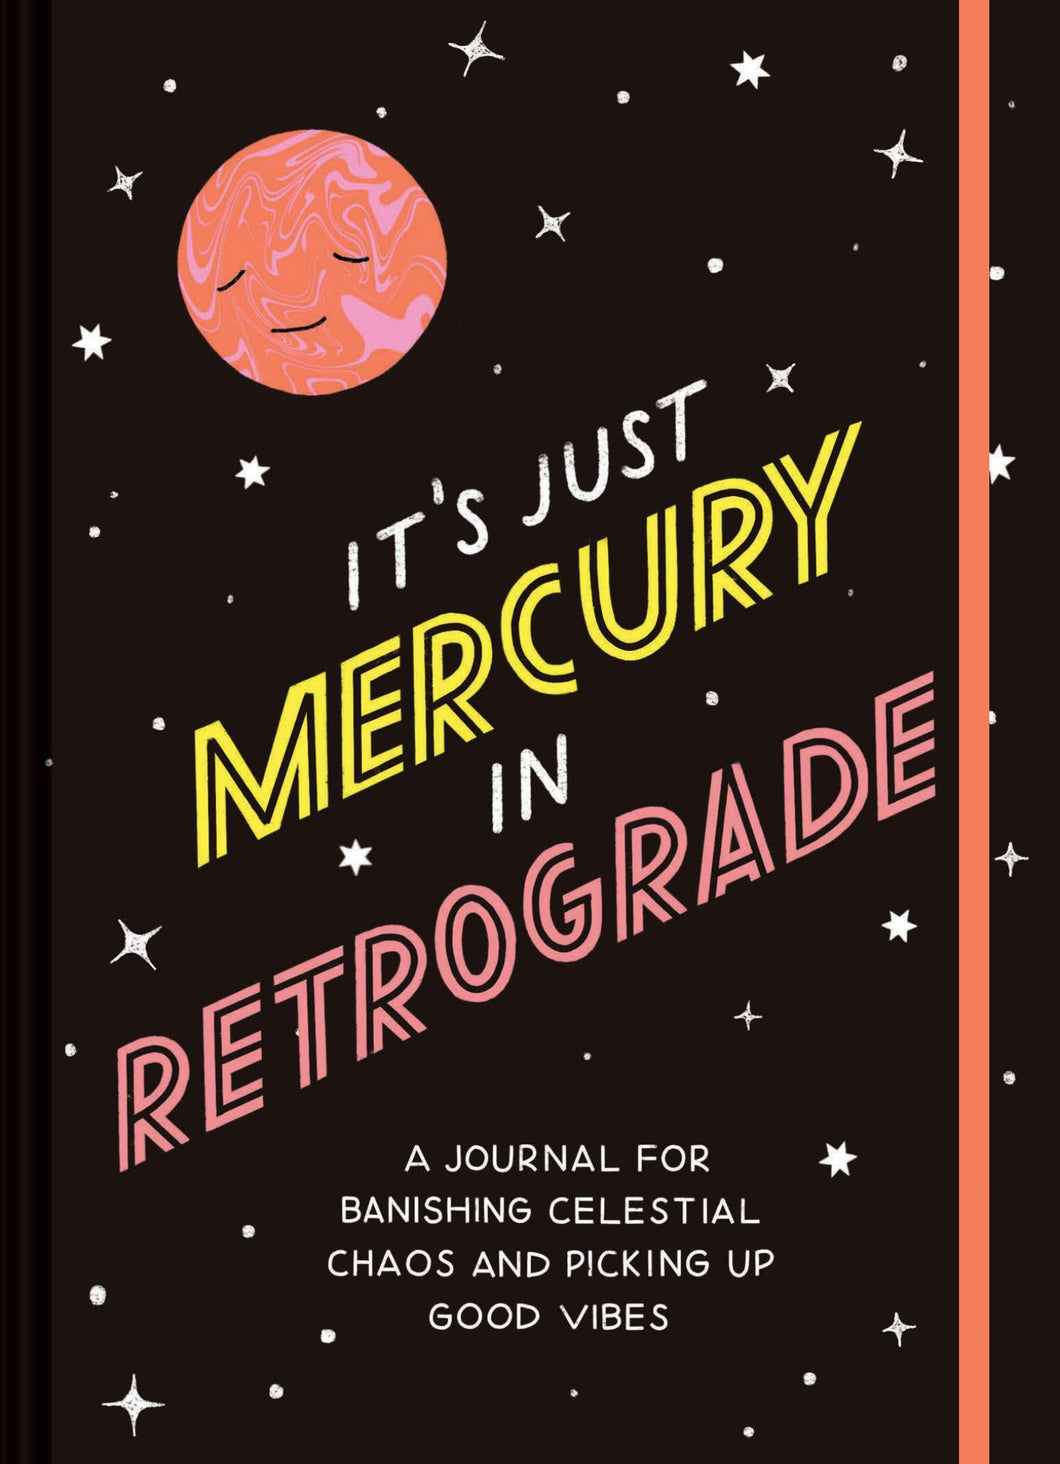 It's Just Mercury in Retrograde: A Journal for Banishing Celestial Chaos and Picking Up Good Vibes